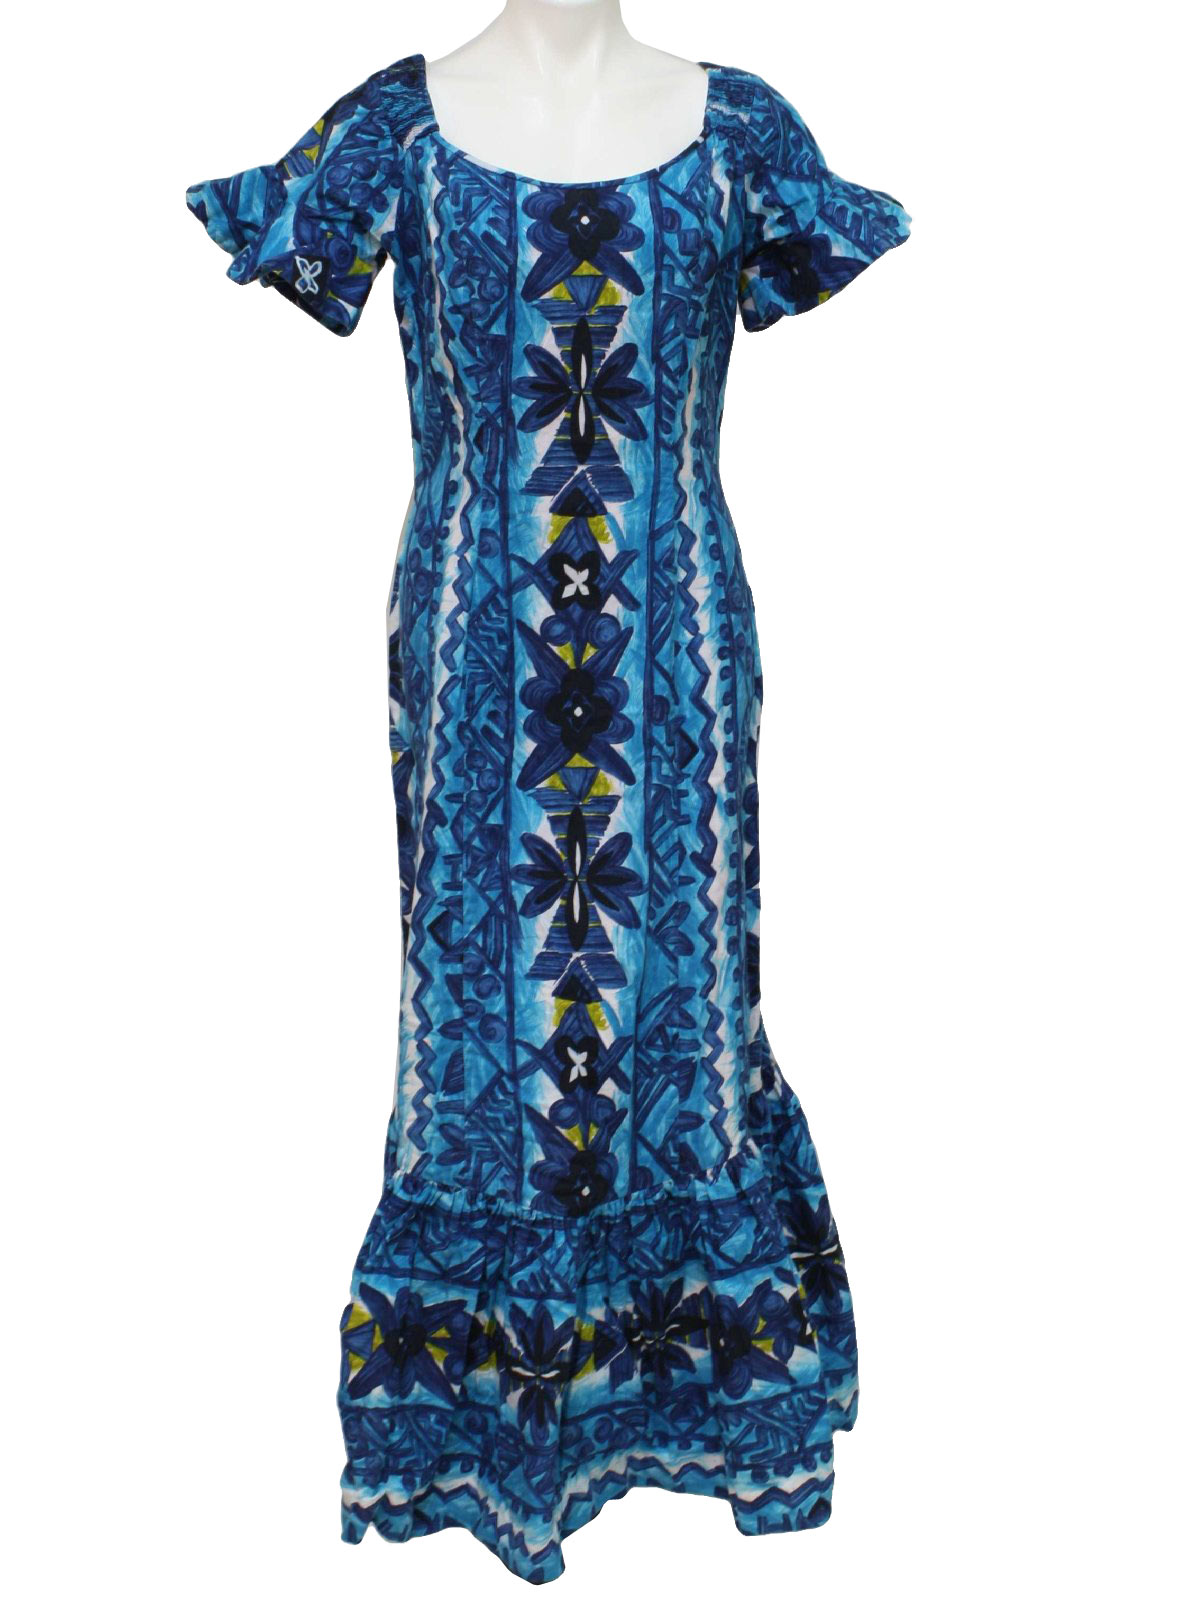 Cool Traditional Hawaiian Clothing For Women Hawaiian Women39s Wear